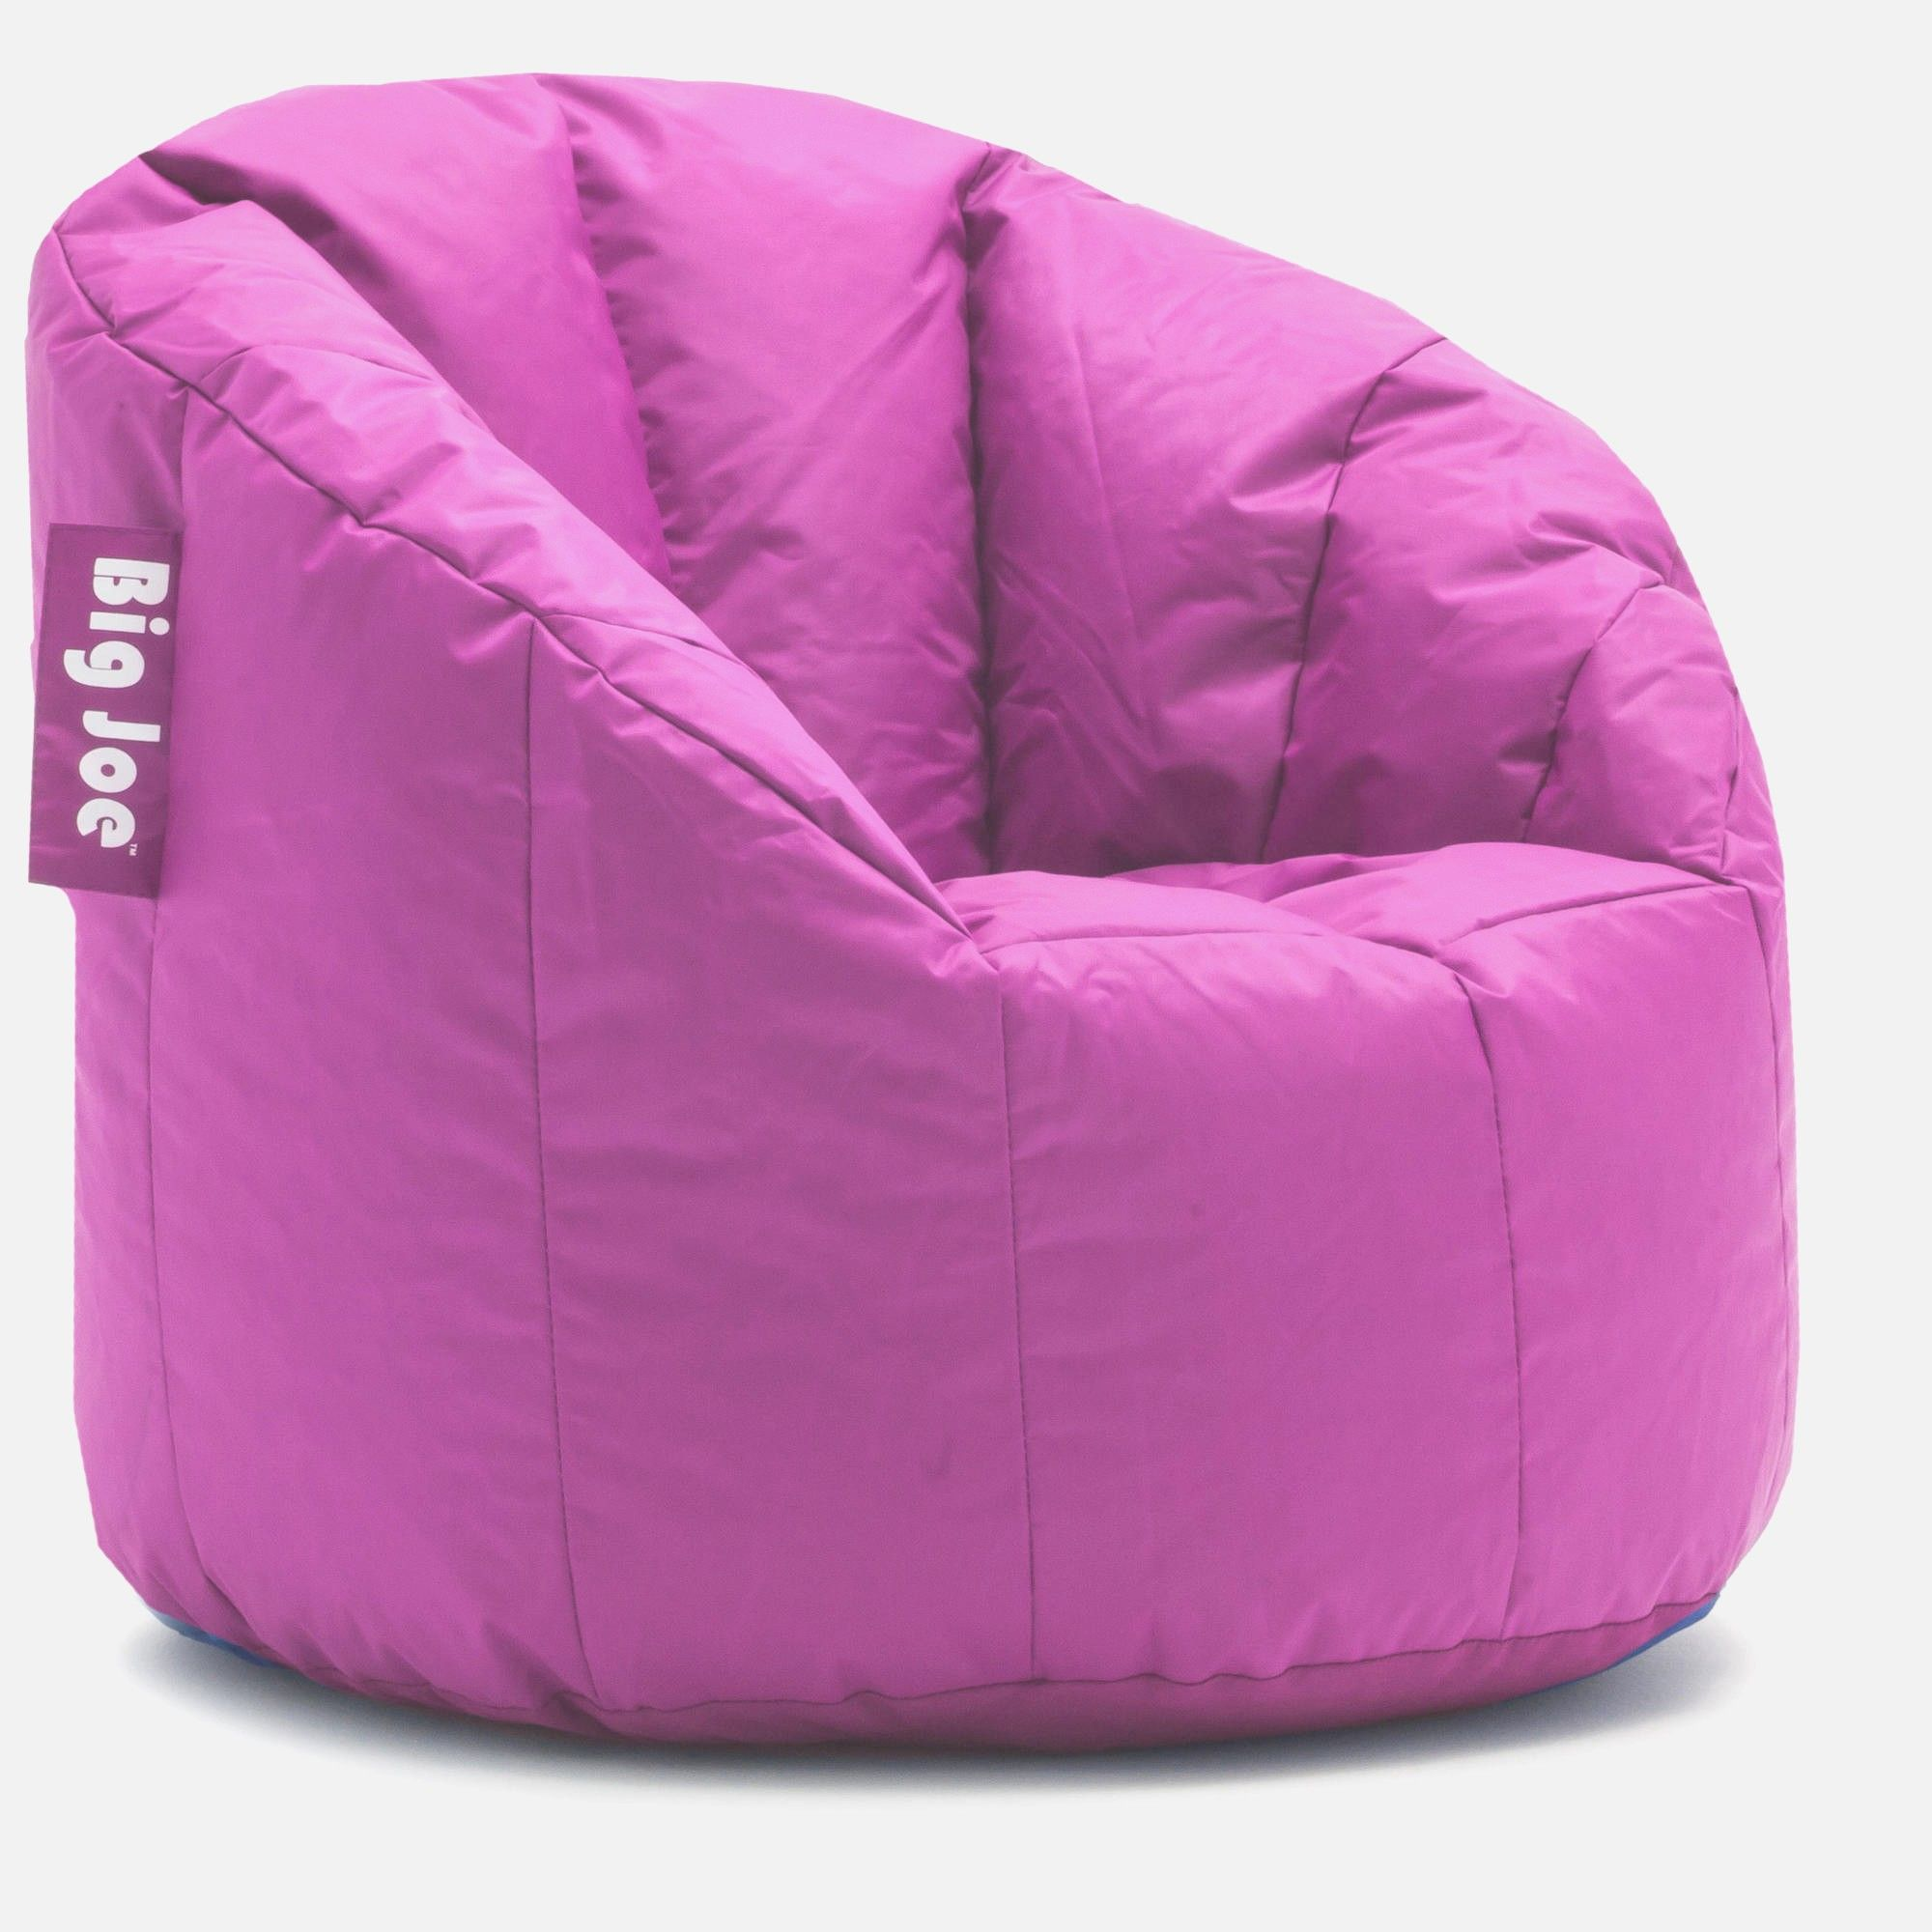 affordable bean bag chairs red barber bing australia cheap clearance for adults ikea guelph